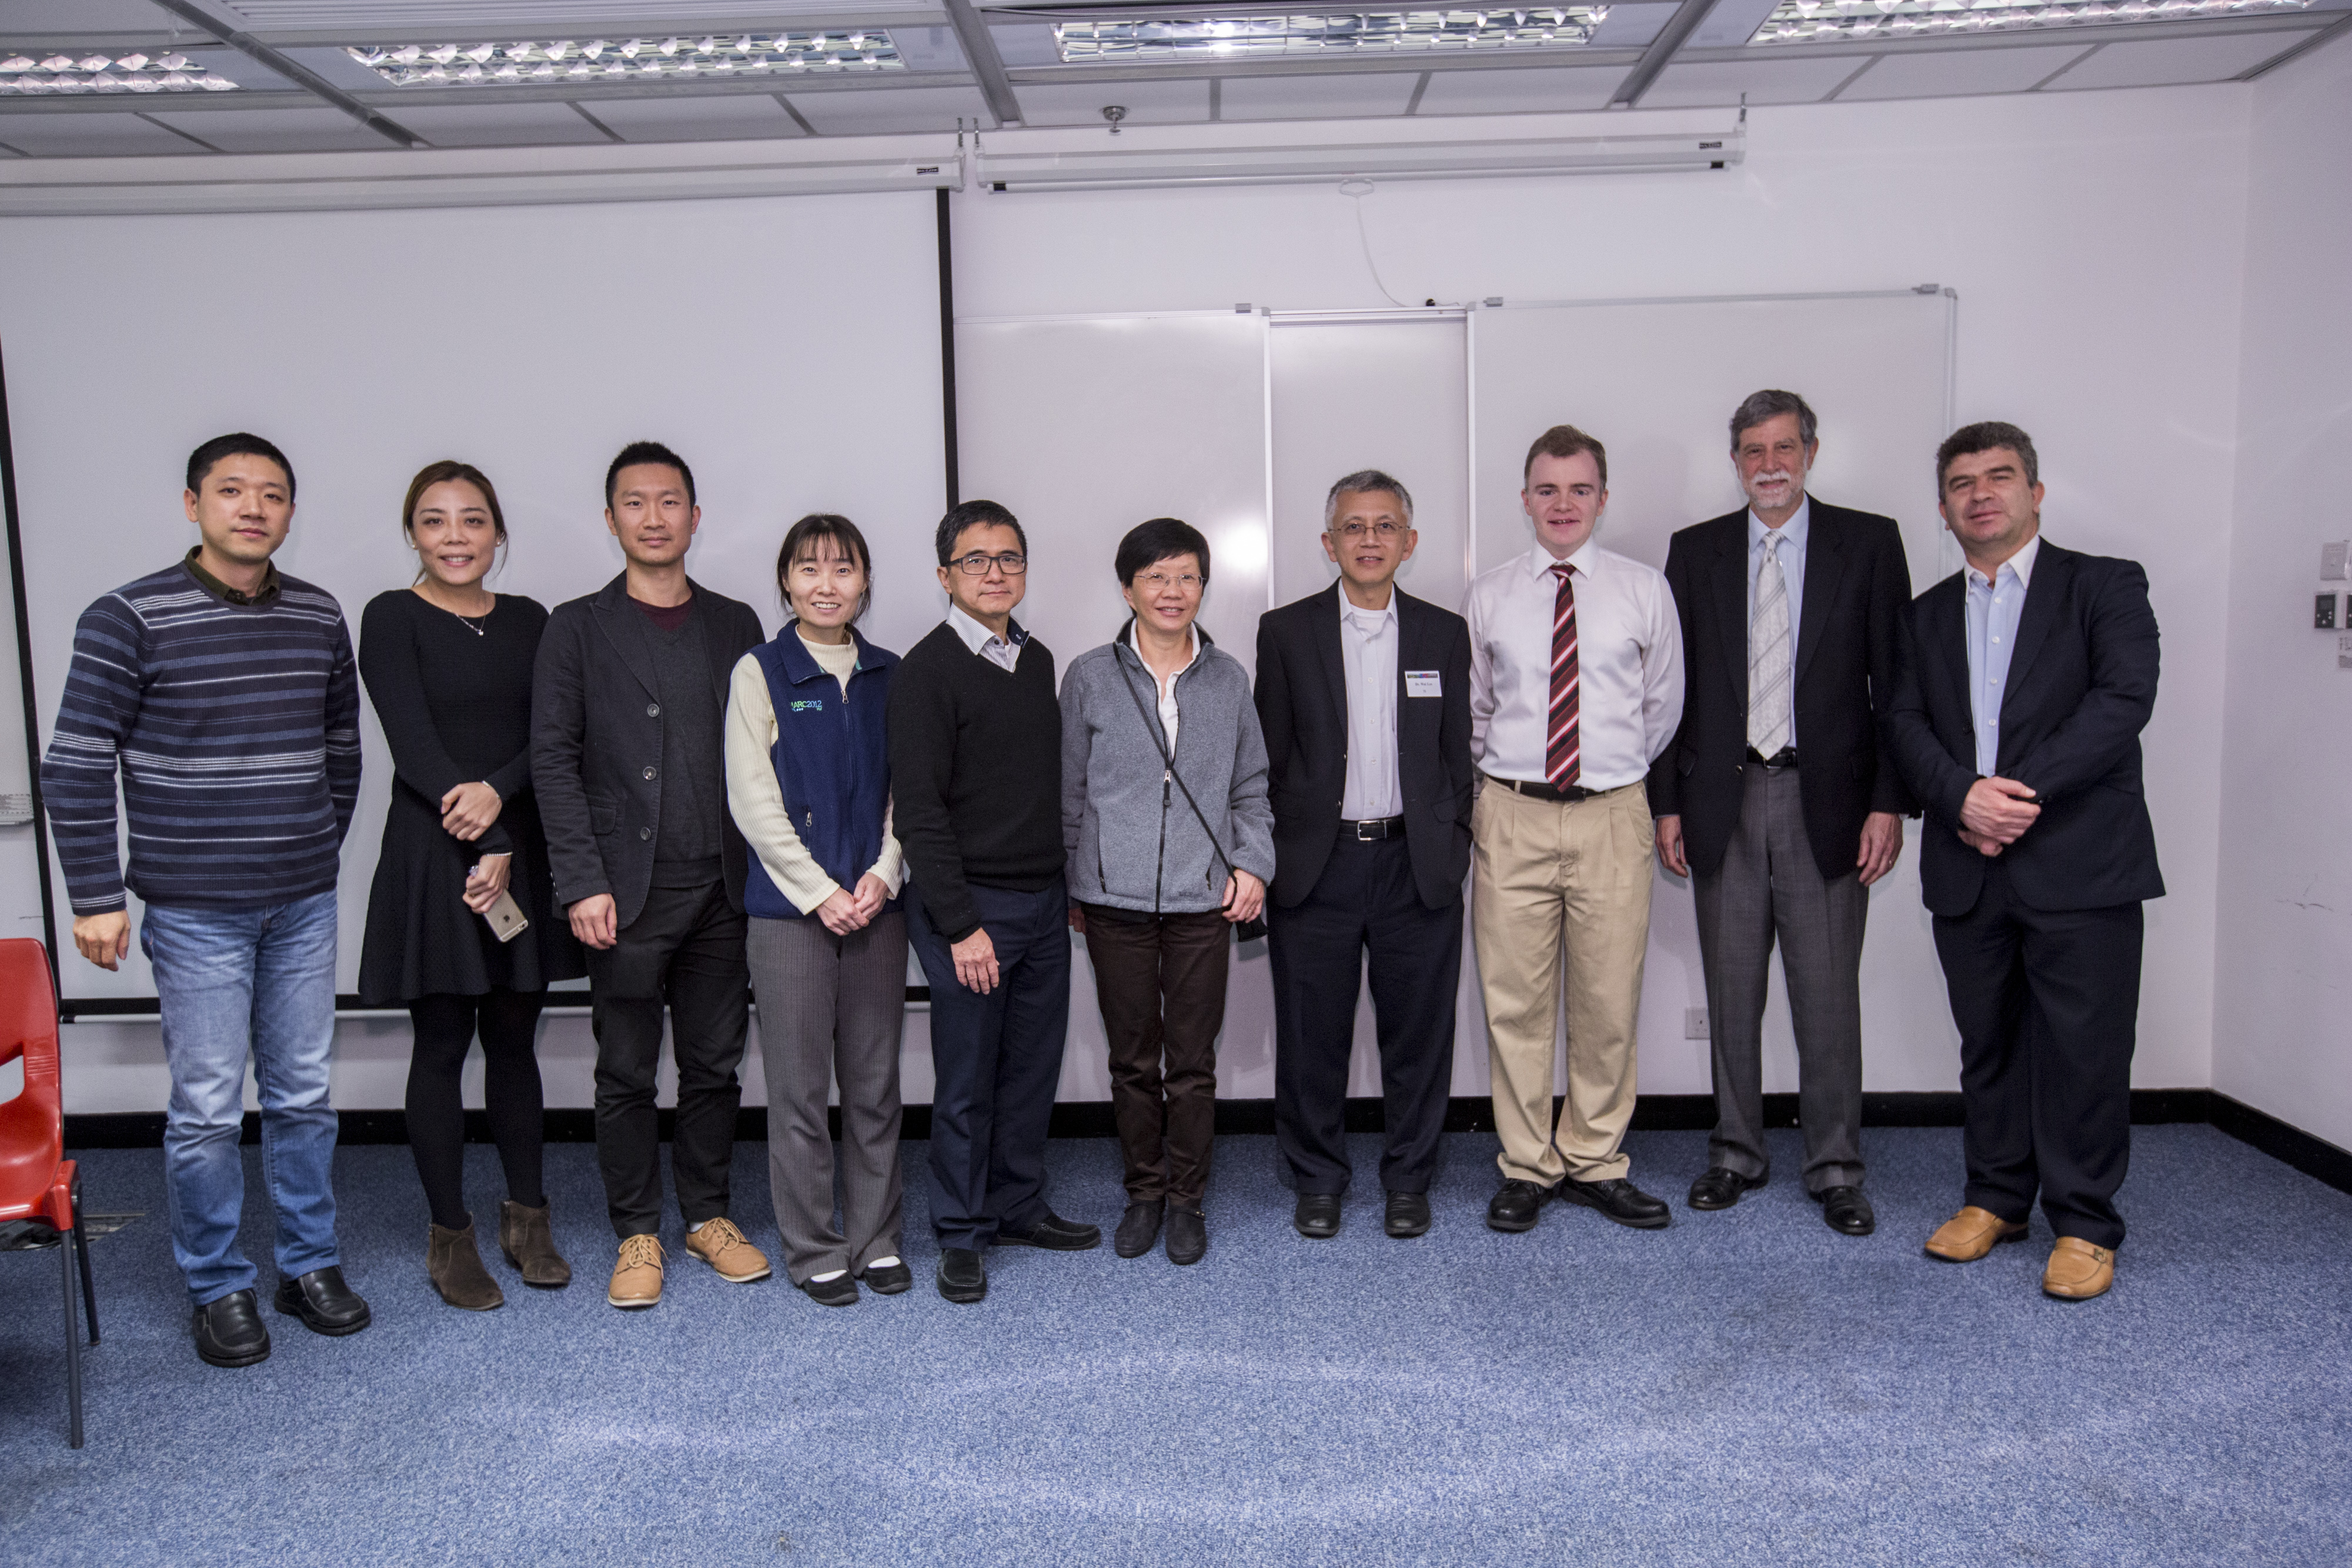 HKU_Res_All_Con_P14567_02_005